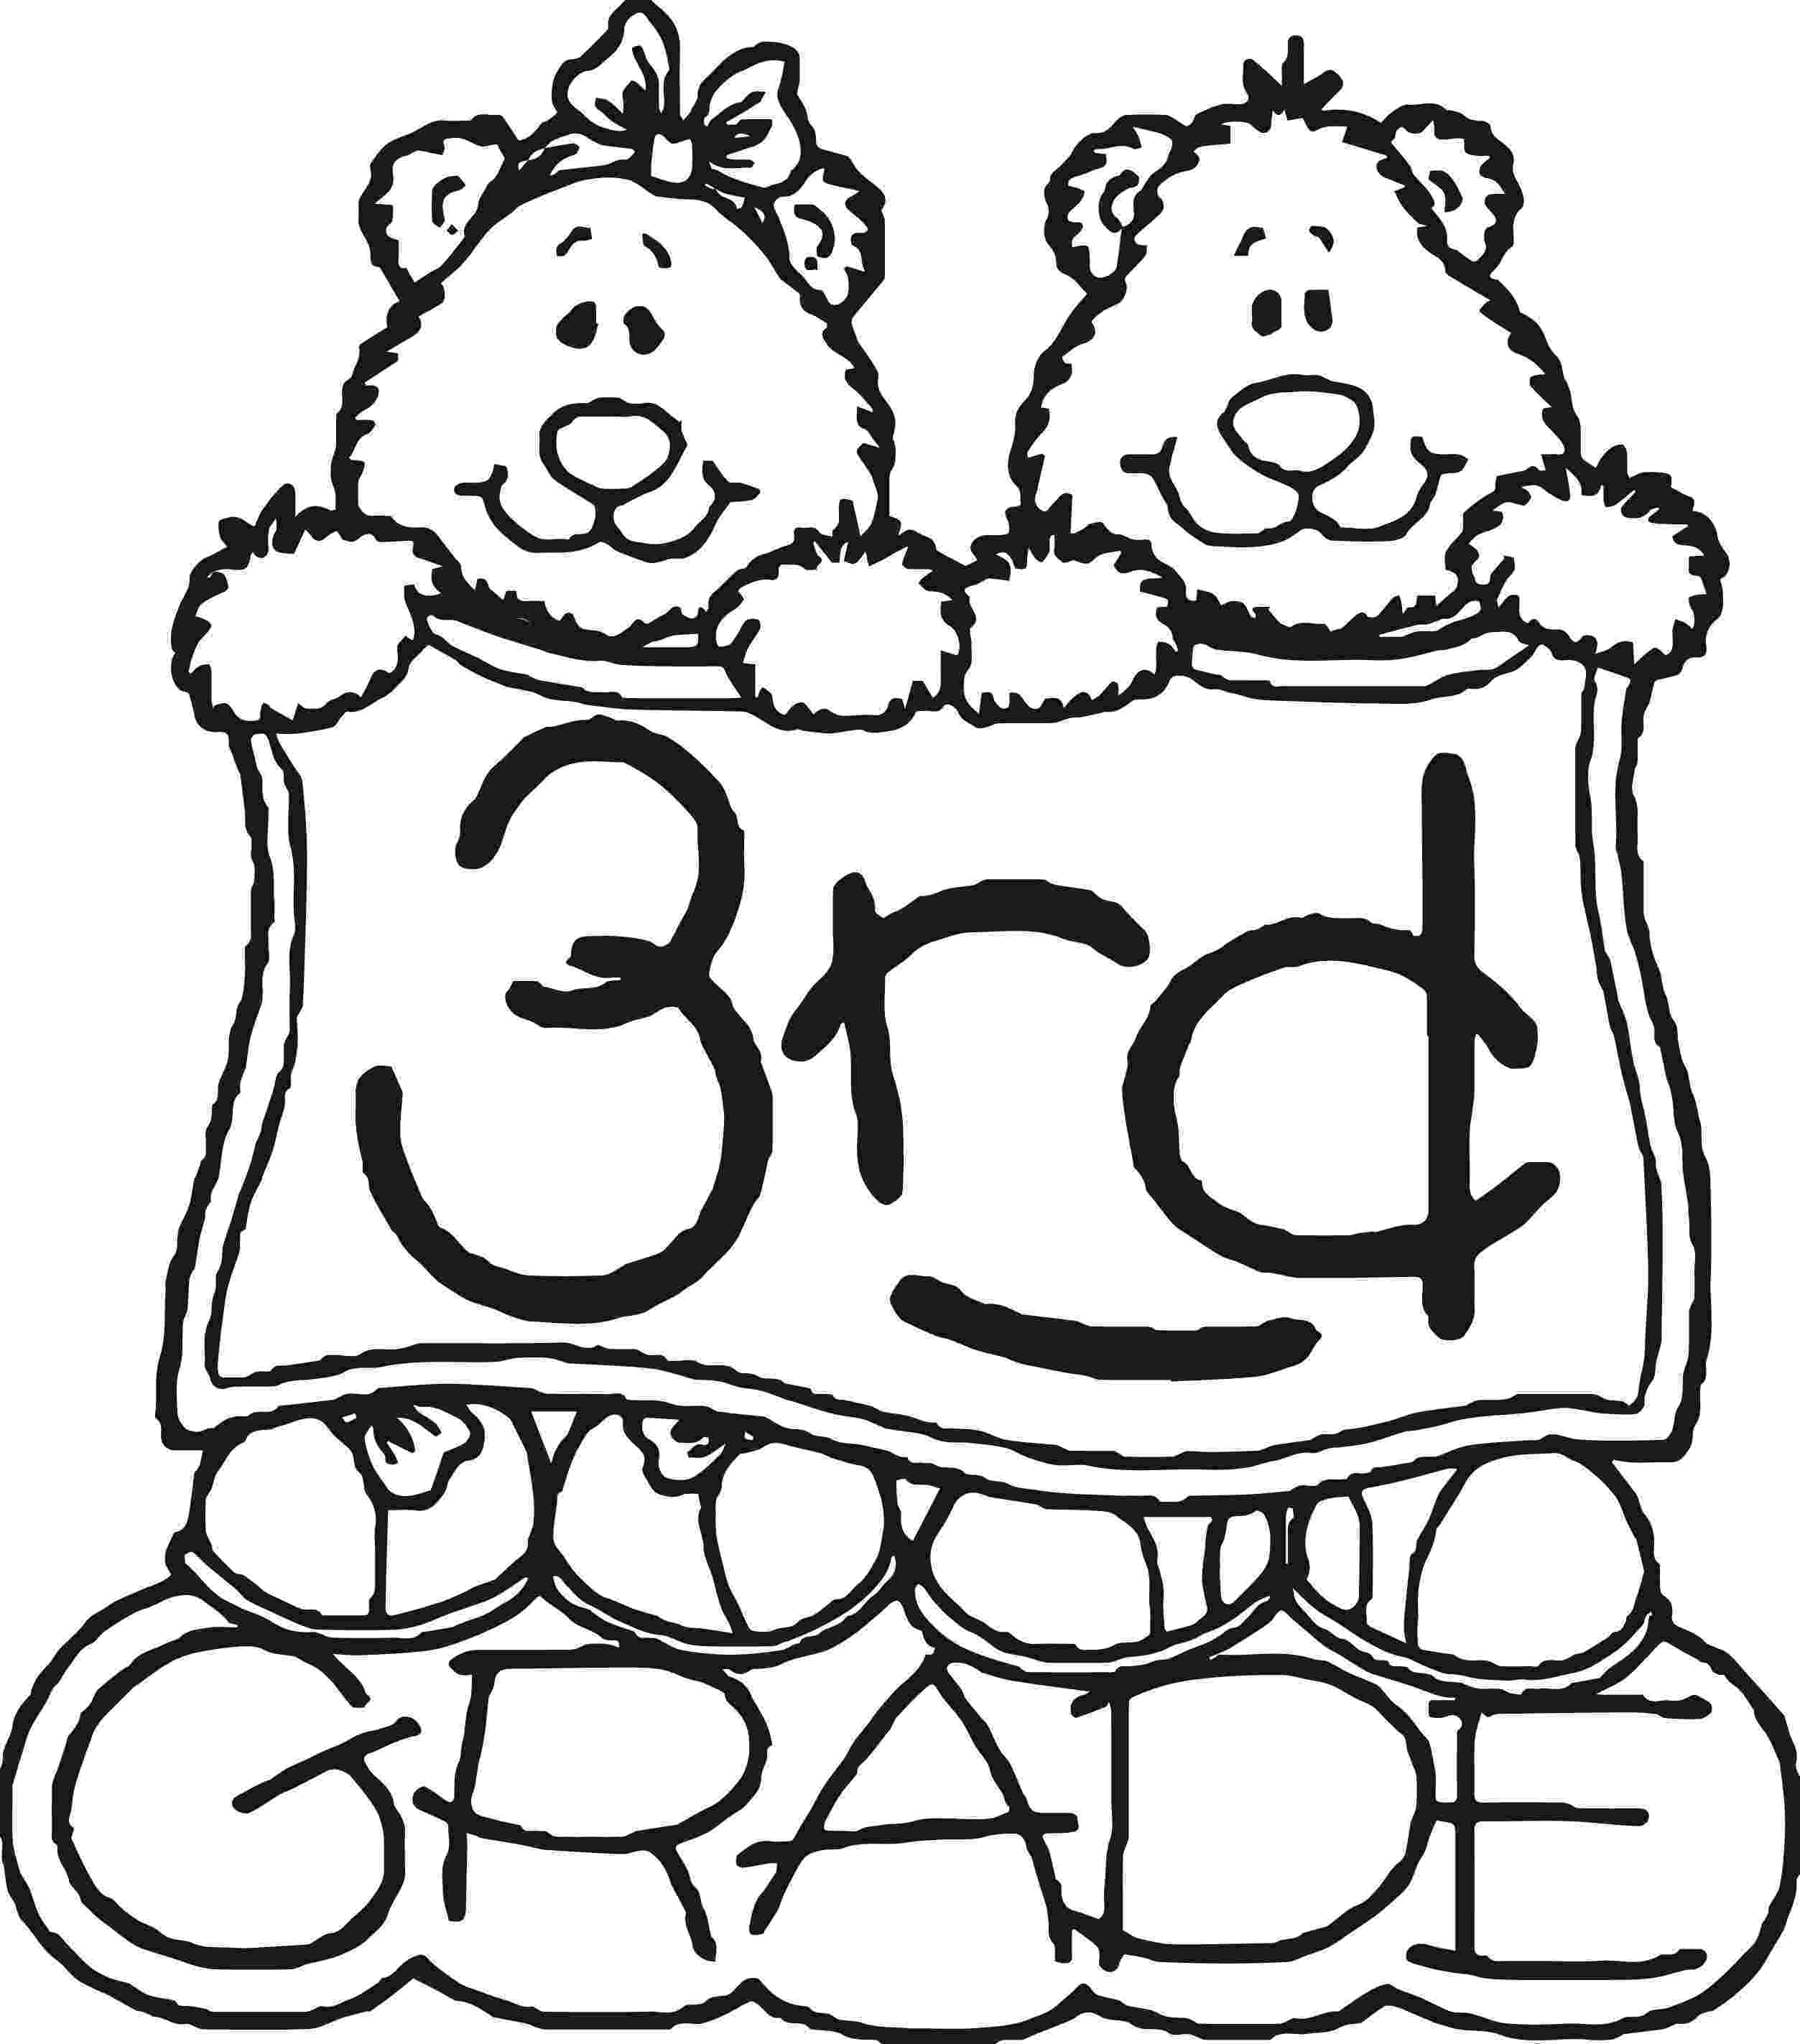 3rd grade coloring pages 3rd grade bear coloring page wecoloringpagecom 3rd pages grade coloring